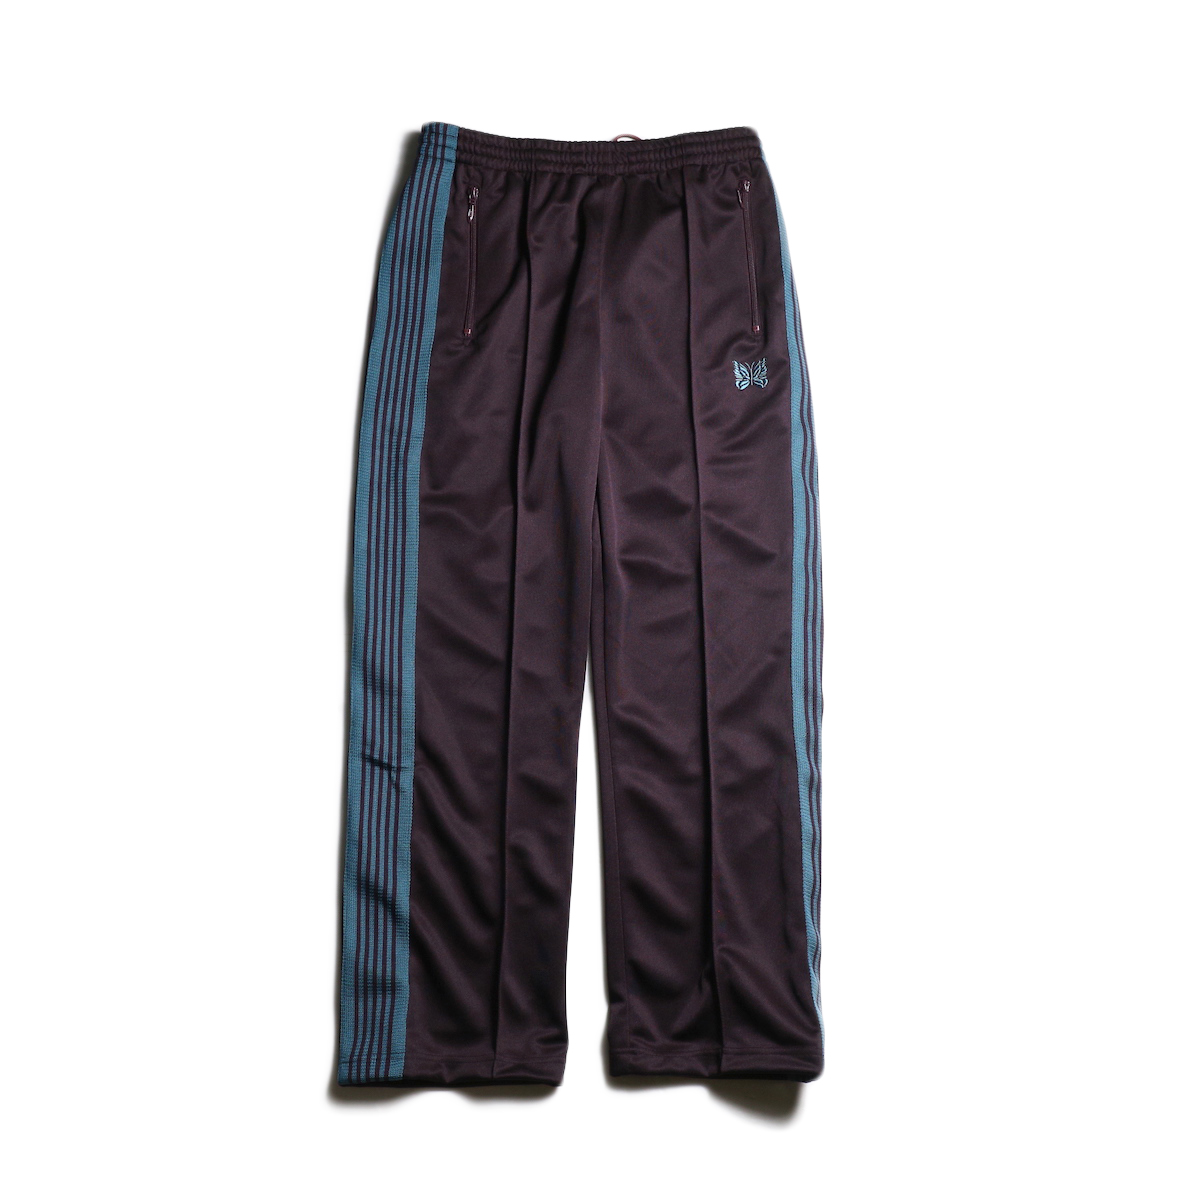 Needles / TRACK PANT - POLY SMOOTH (Bordeaux)